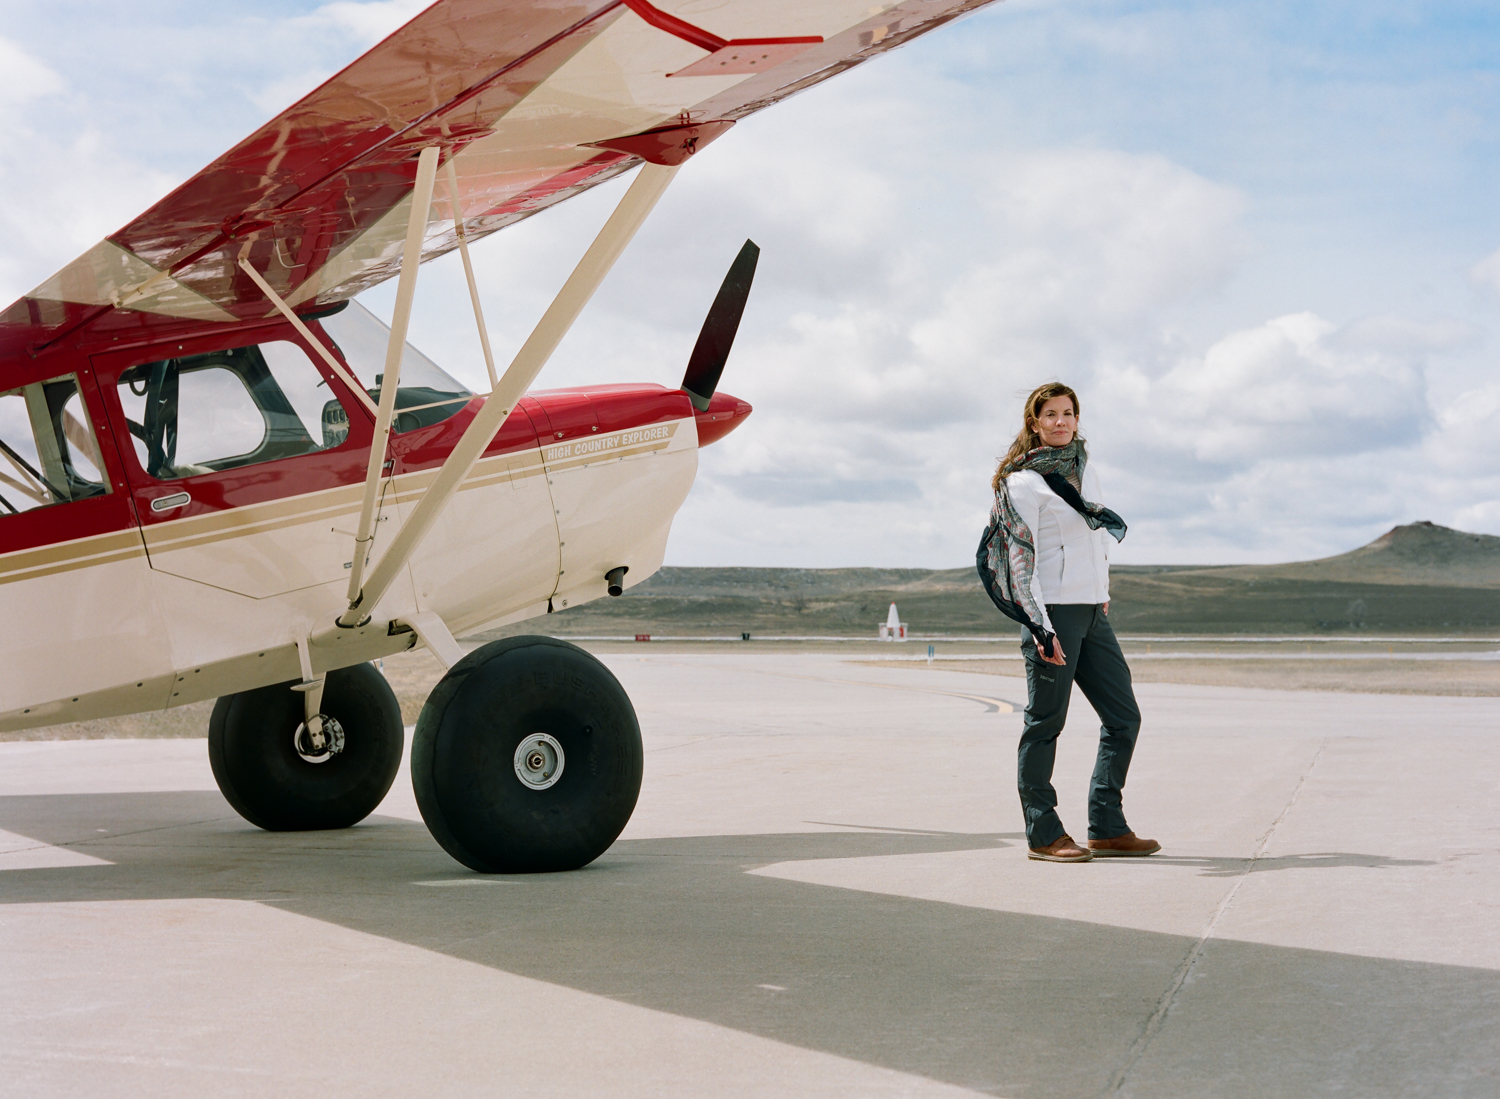 Lori Olson is a backcountry pilot, rural airstrip advocate, and director of the Upton Municipal Airport in Upton, Wyoming. Pictured here with 'Papa Charlie,' her American Champion 7GCGC high country plane.